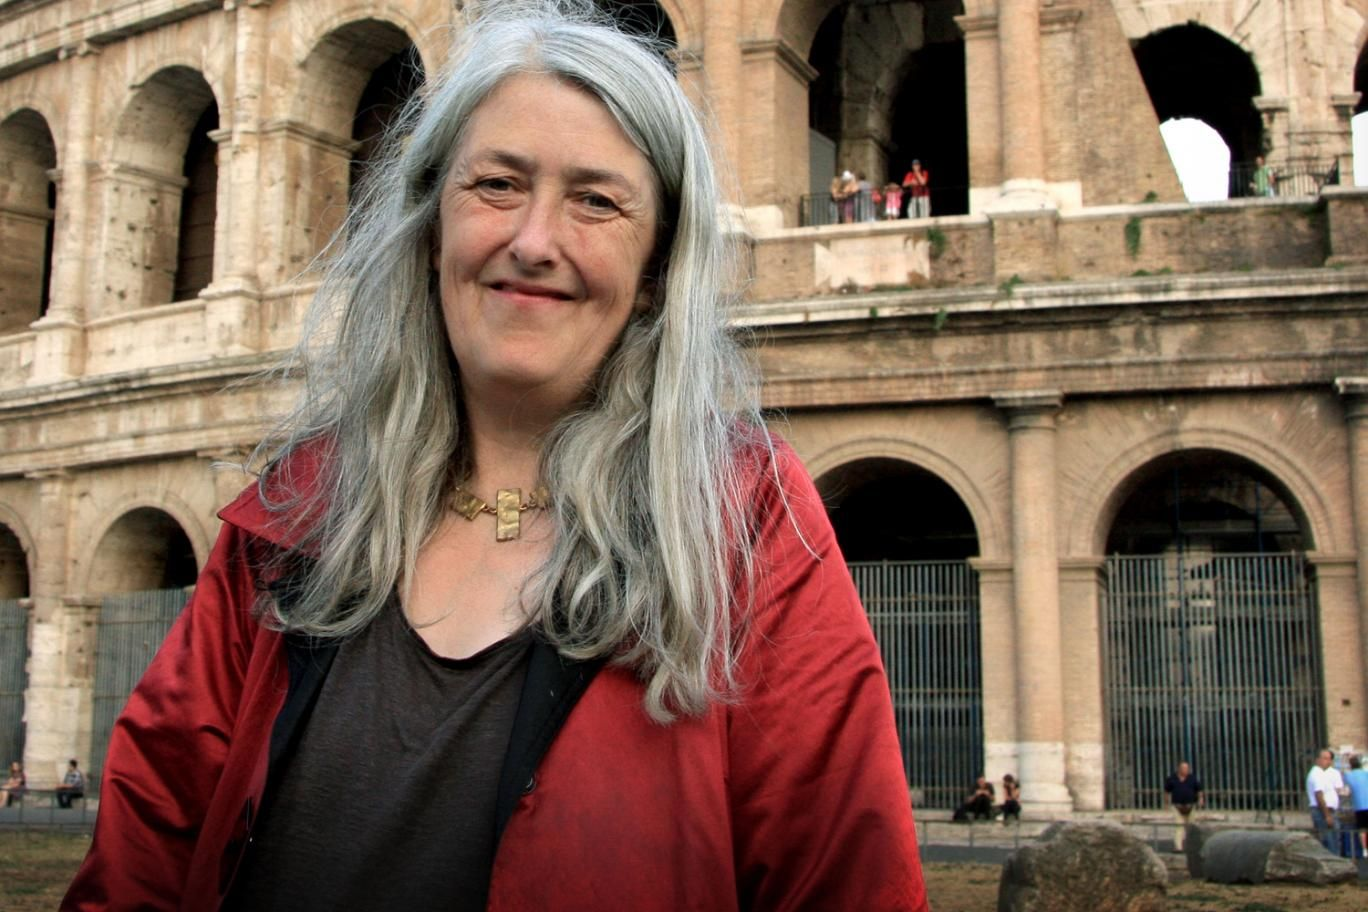 Mary Beard standing in front of Colosseum